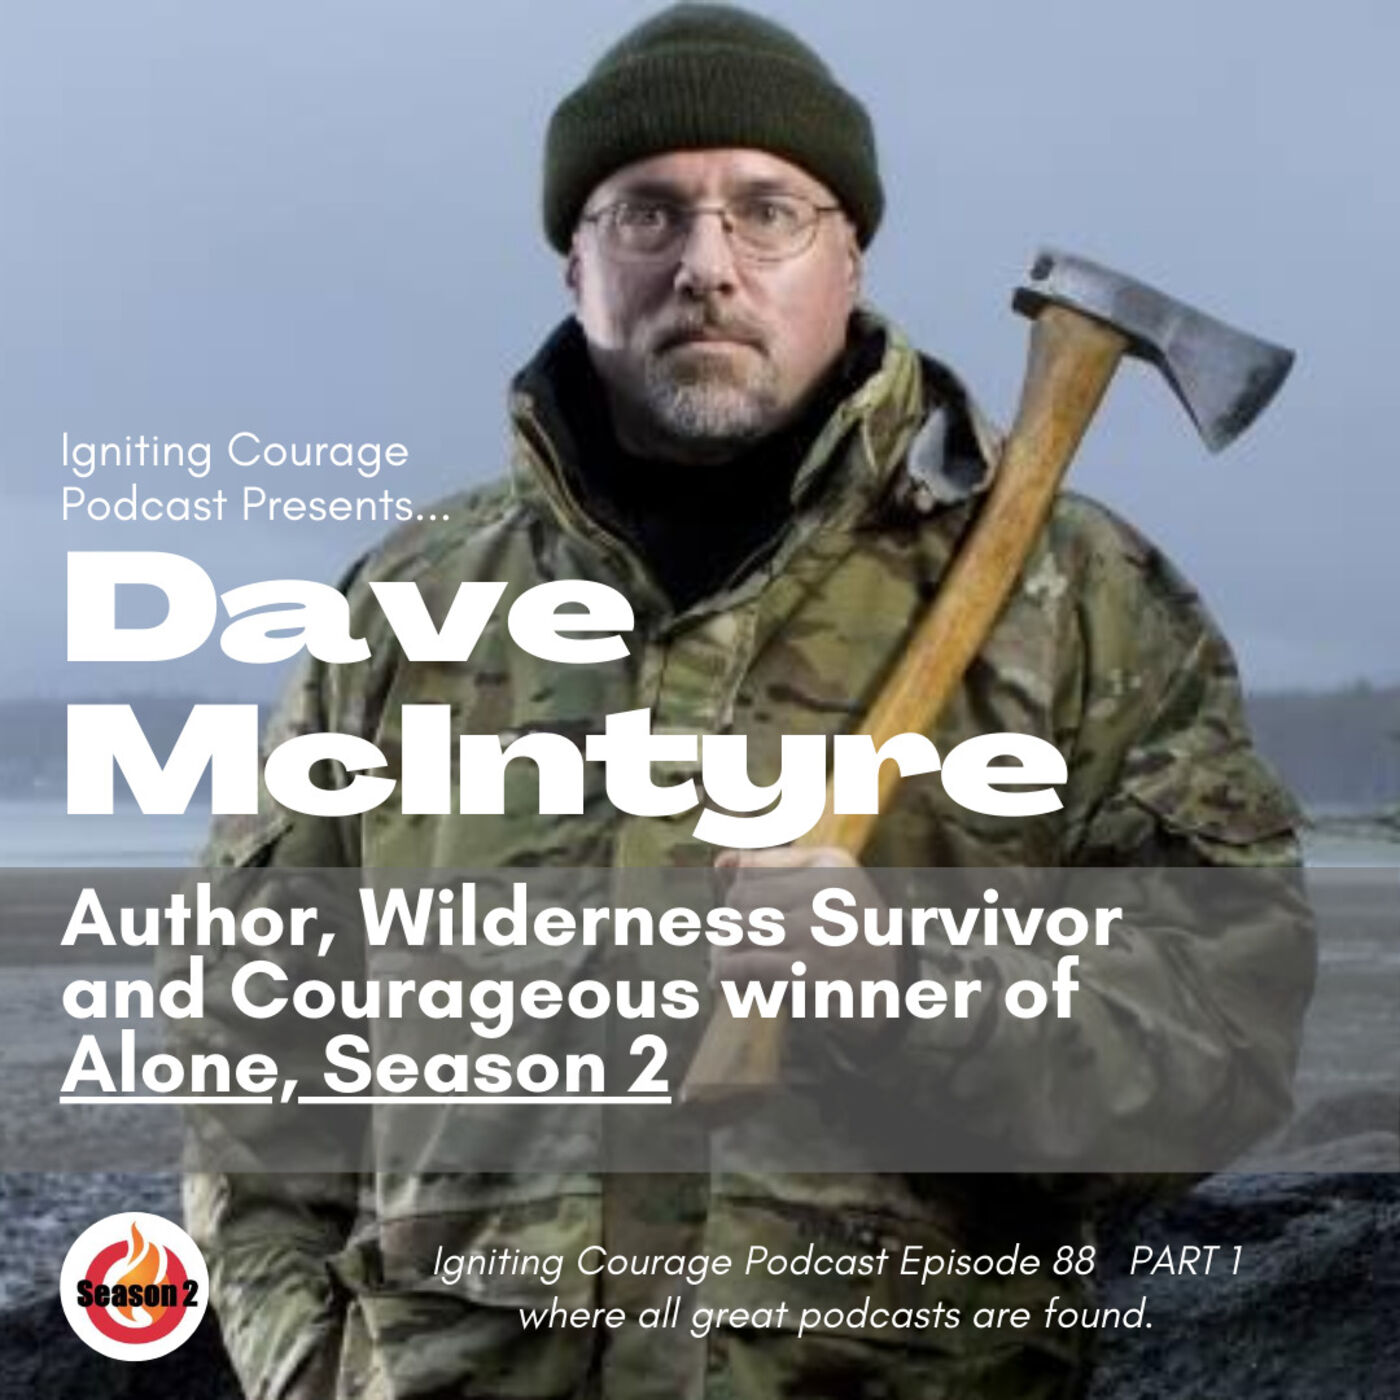 IGNITING COURAGE Podcast Episode 88 PART 1: Dave McIntyre, Author, Wilderness Survivor and Courageous Winner of Alone Season 2